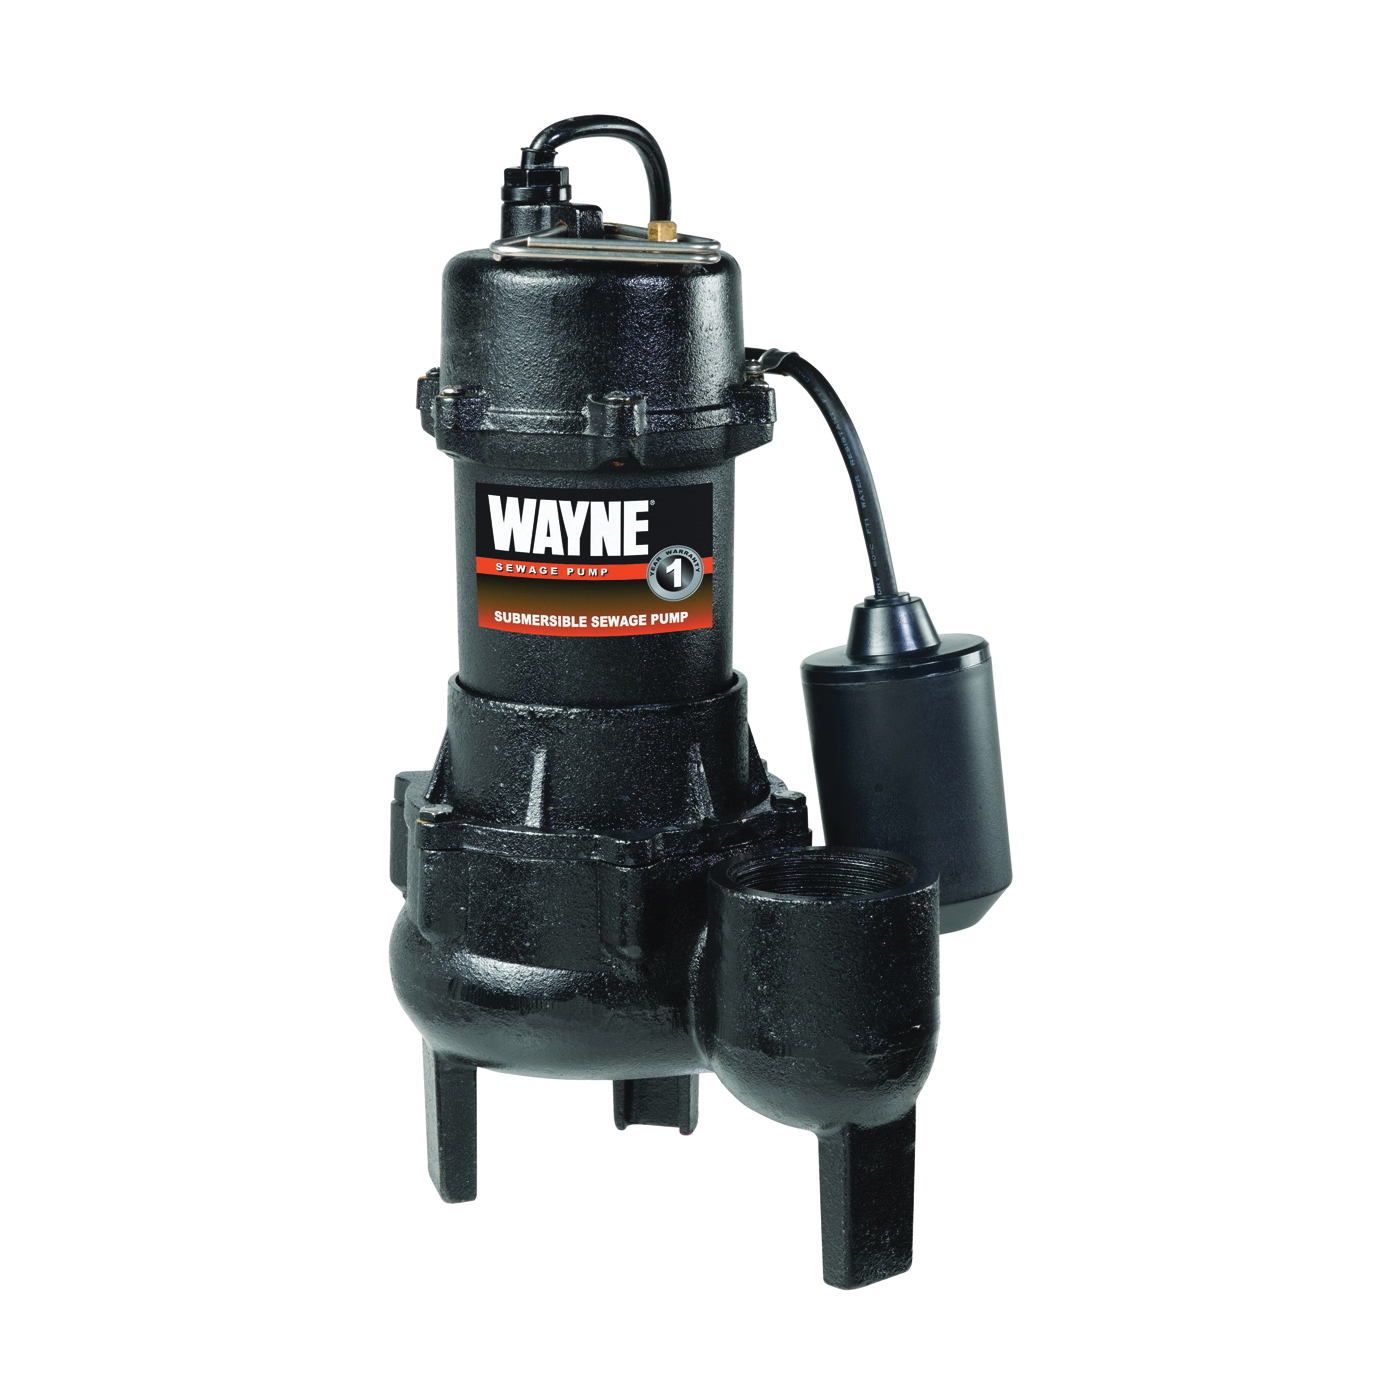 Picture of WAYNE RPP50/SEL50 Sewage Pump, 1-Phase, 15 A, 115 V, 0.5 hp, 2 in Outlet, 20 ft Max Head, 10,000 gph, Iron